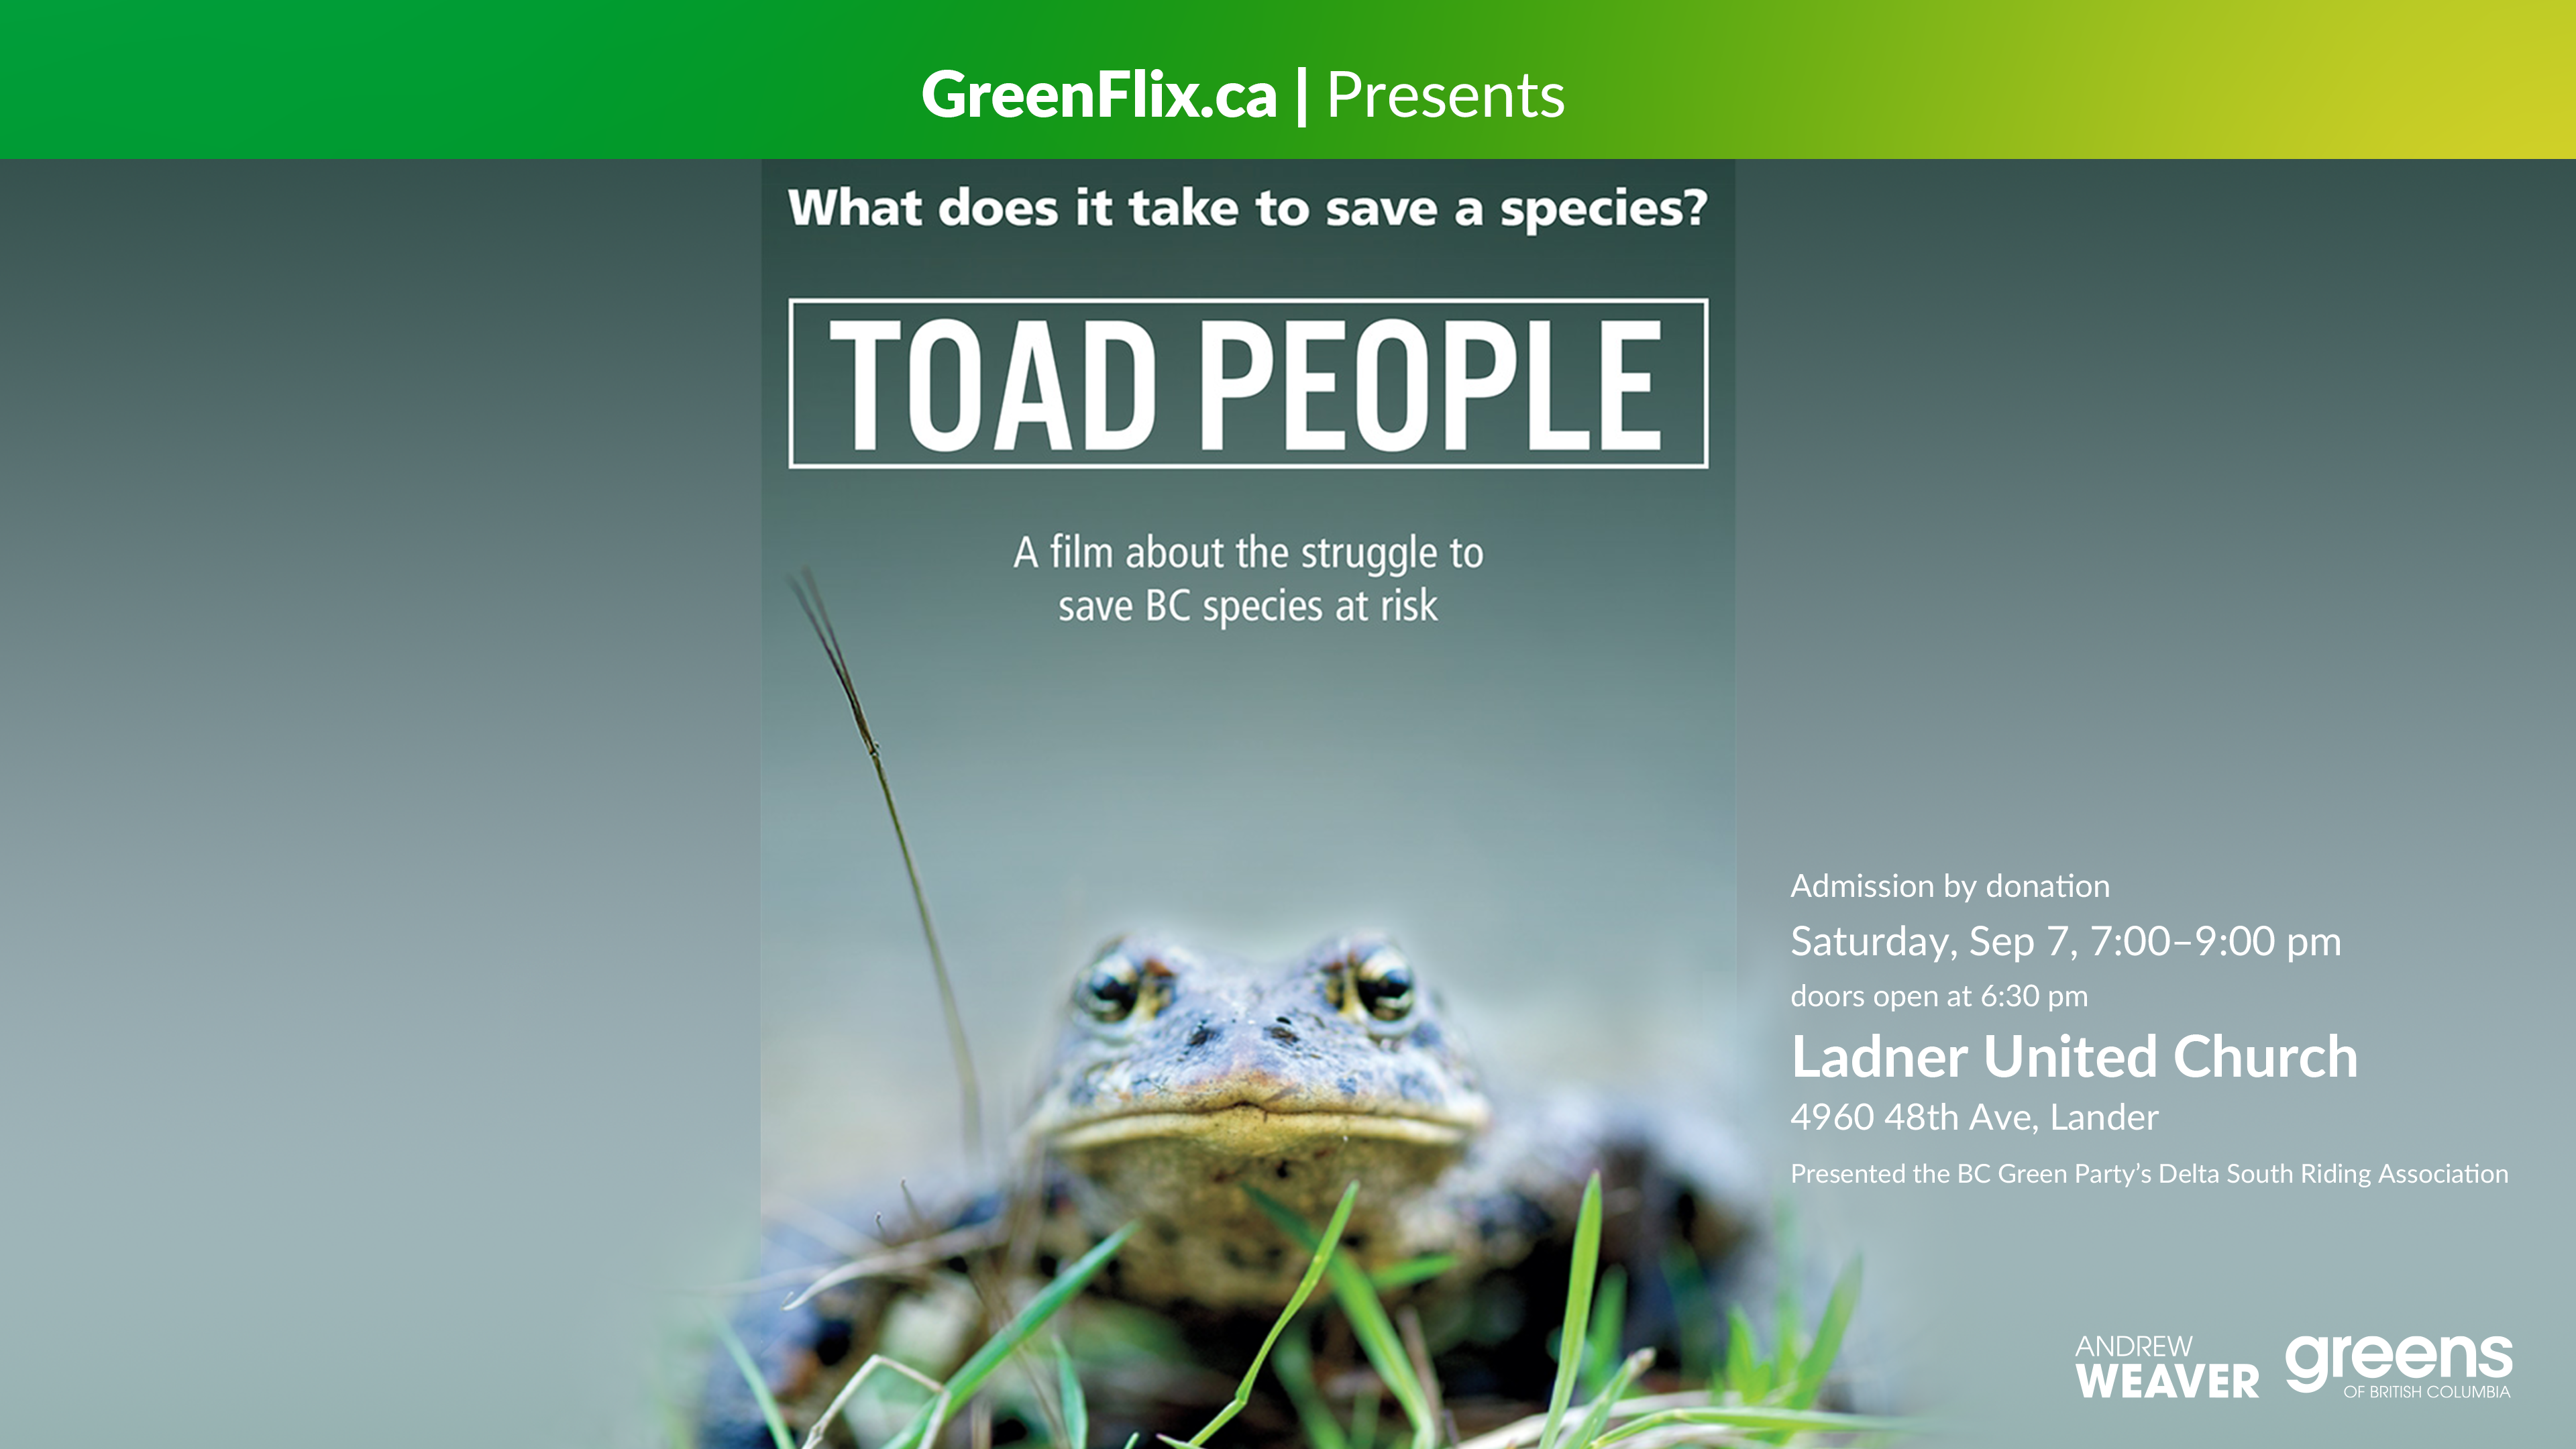 190815-Greenflix-Toad_people.png